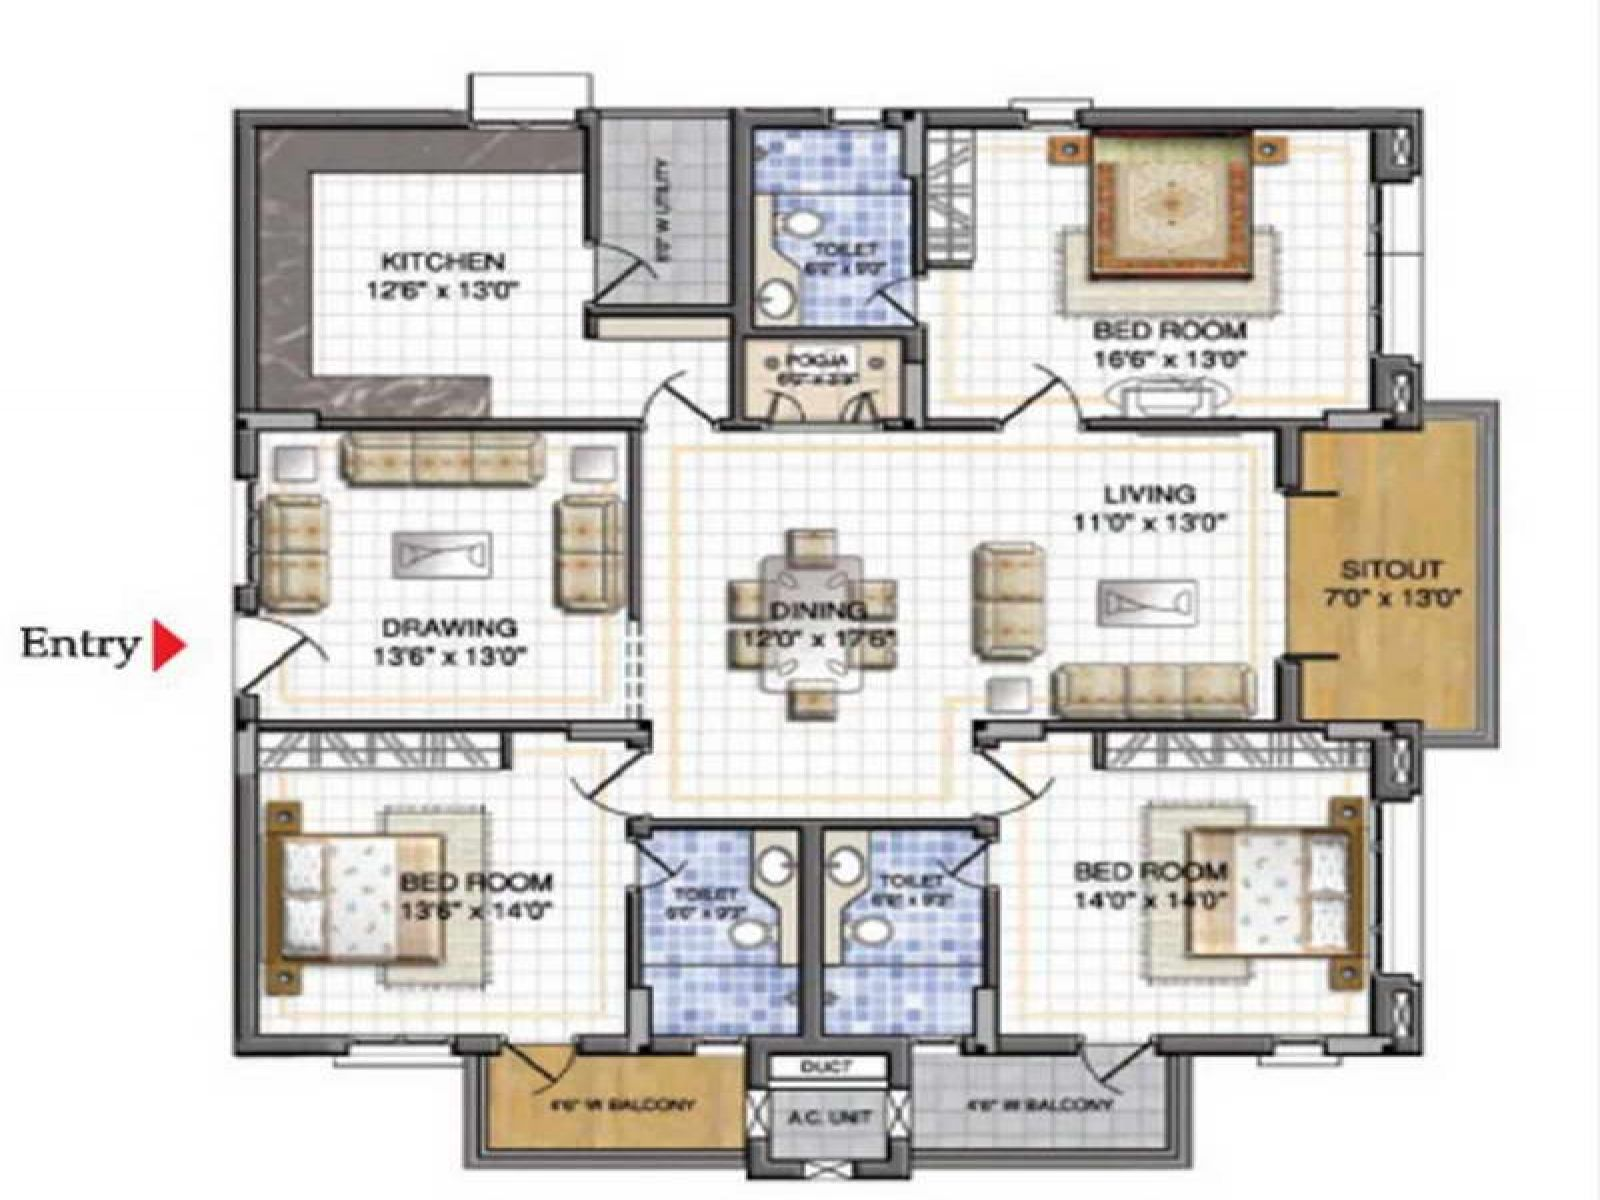 Sweet home 3d plans google search house designs pinterest layout online house plans House map design online free